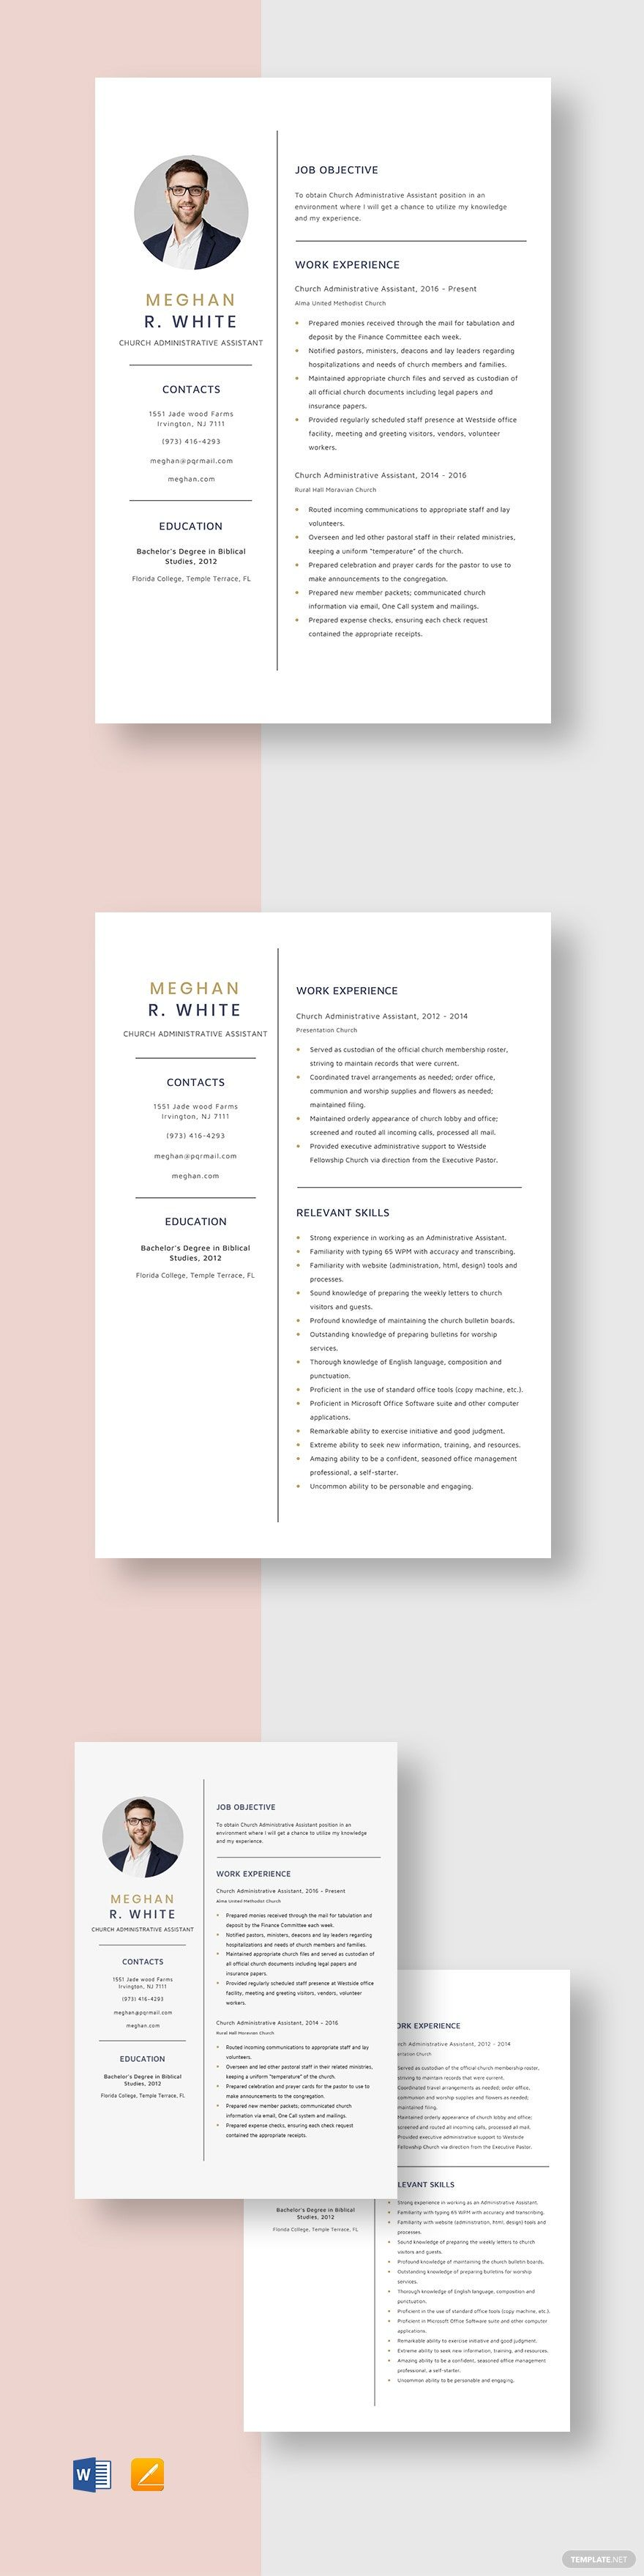 Church administrative assistant resume template in 2020